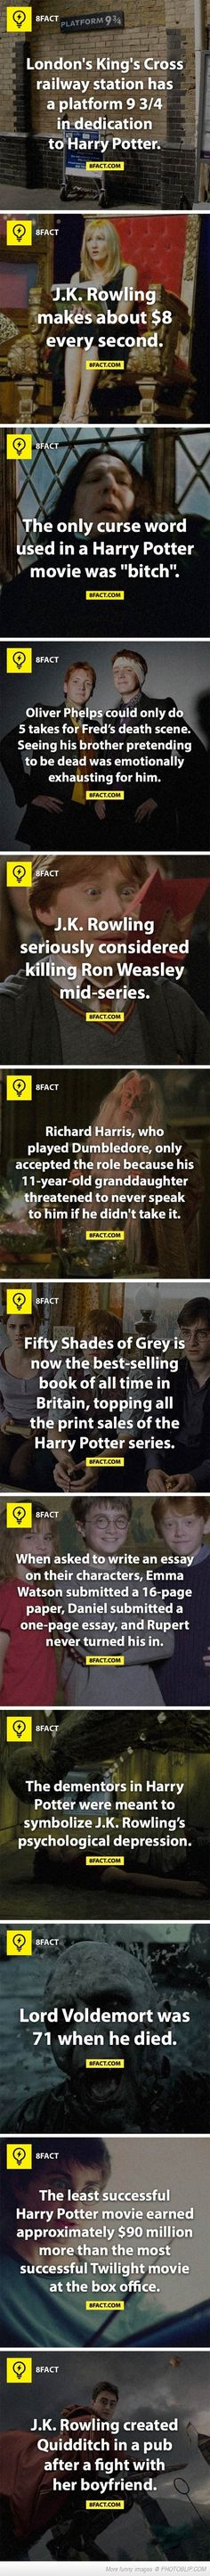 Some more Harry Potter Facts